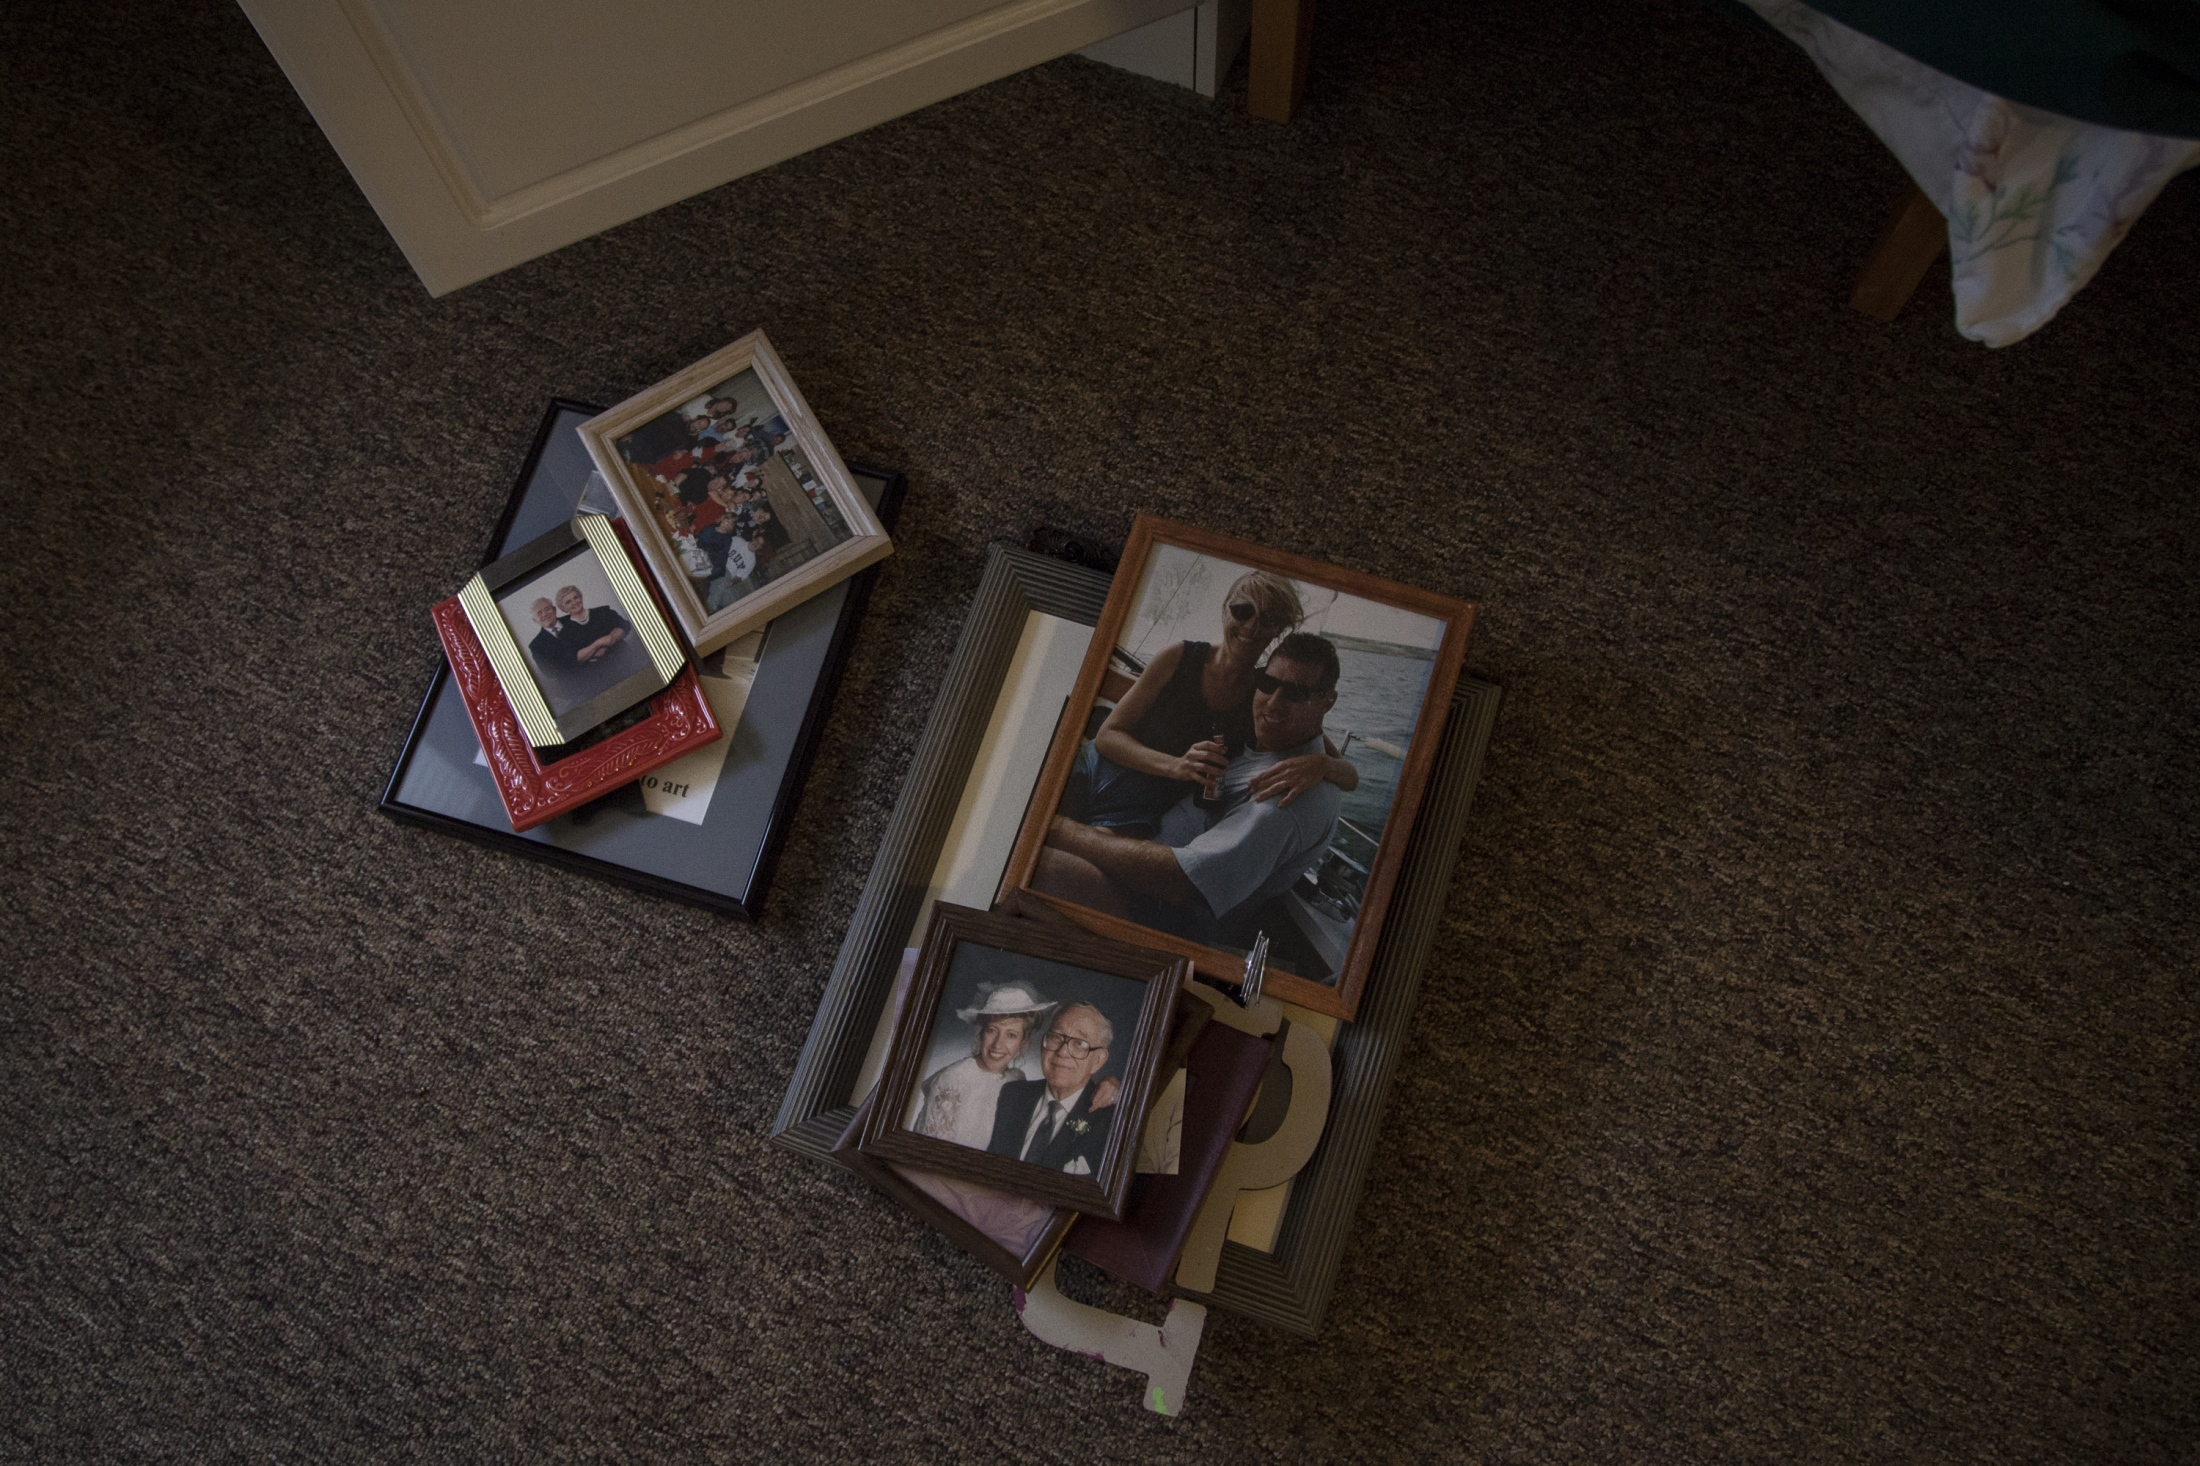 Framed pictures sit on the floor in the senior home as family members move in her personal items.